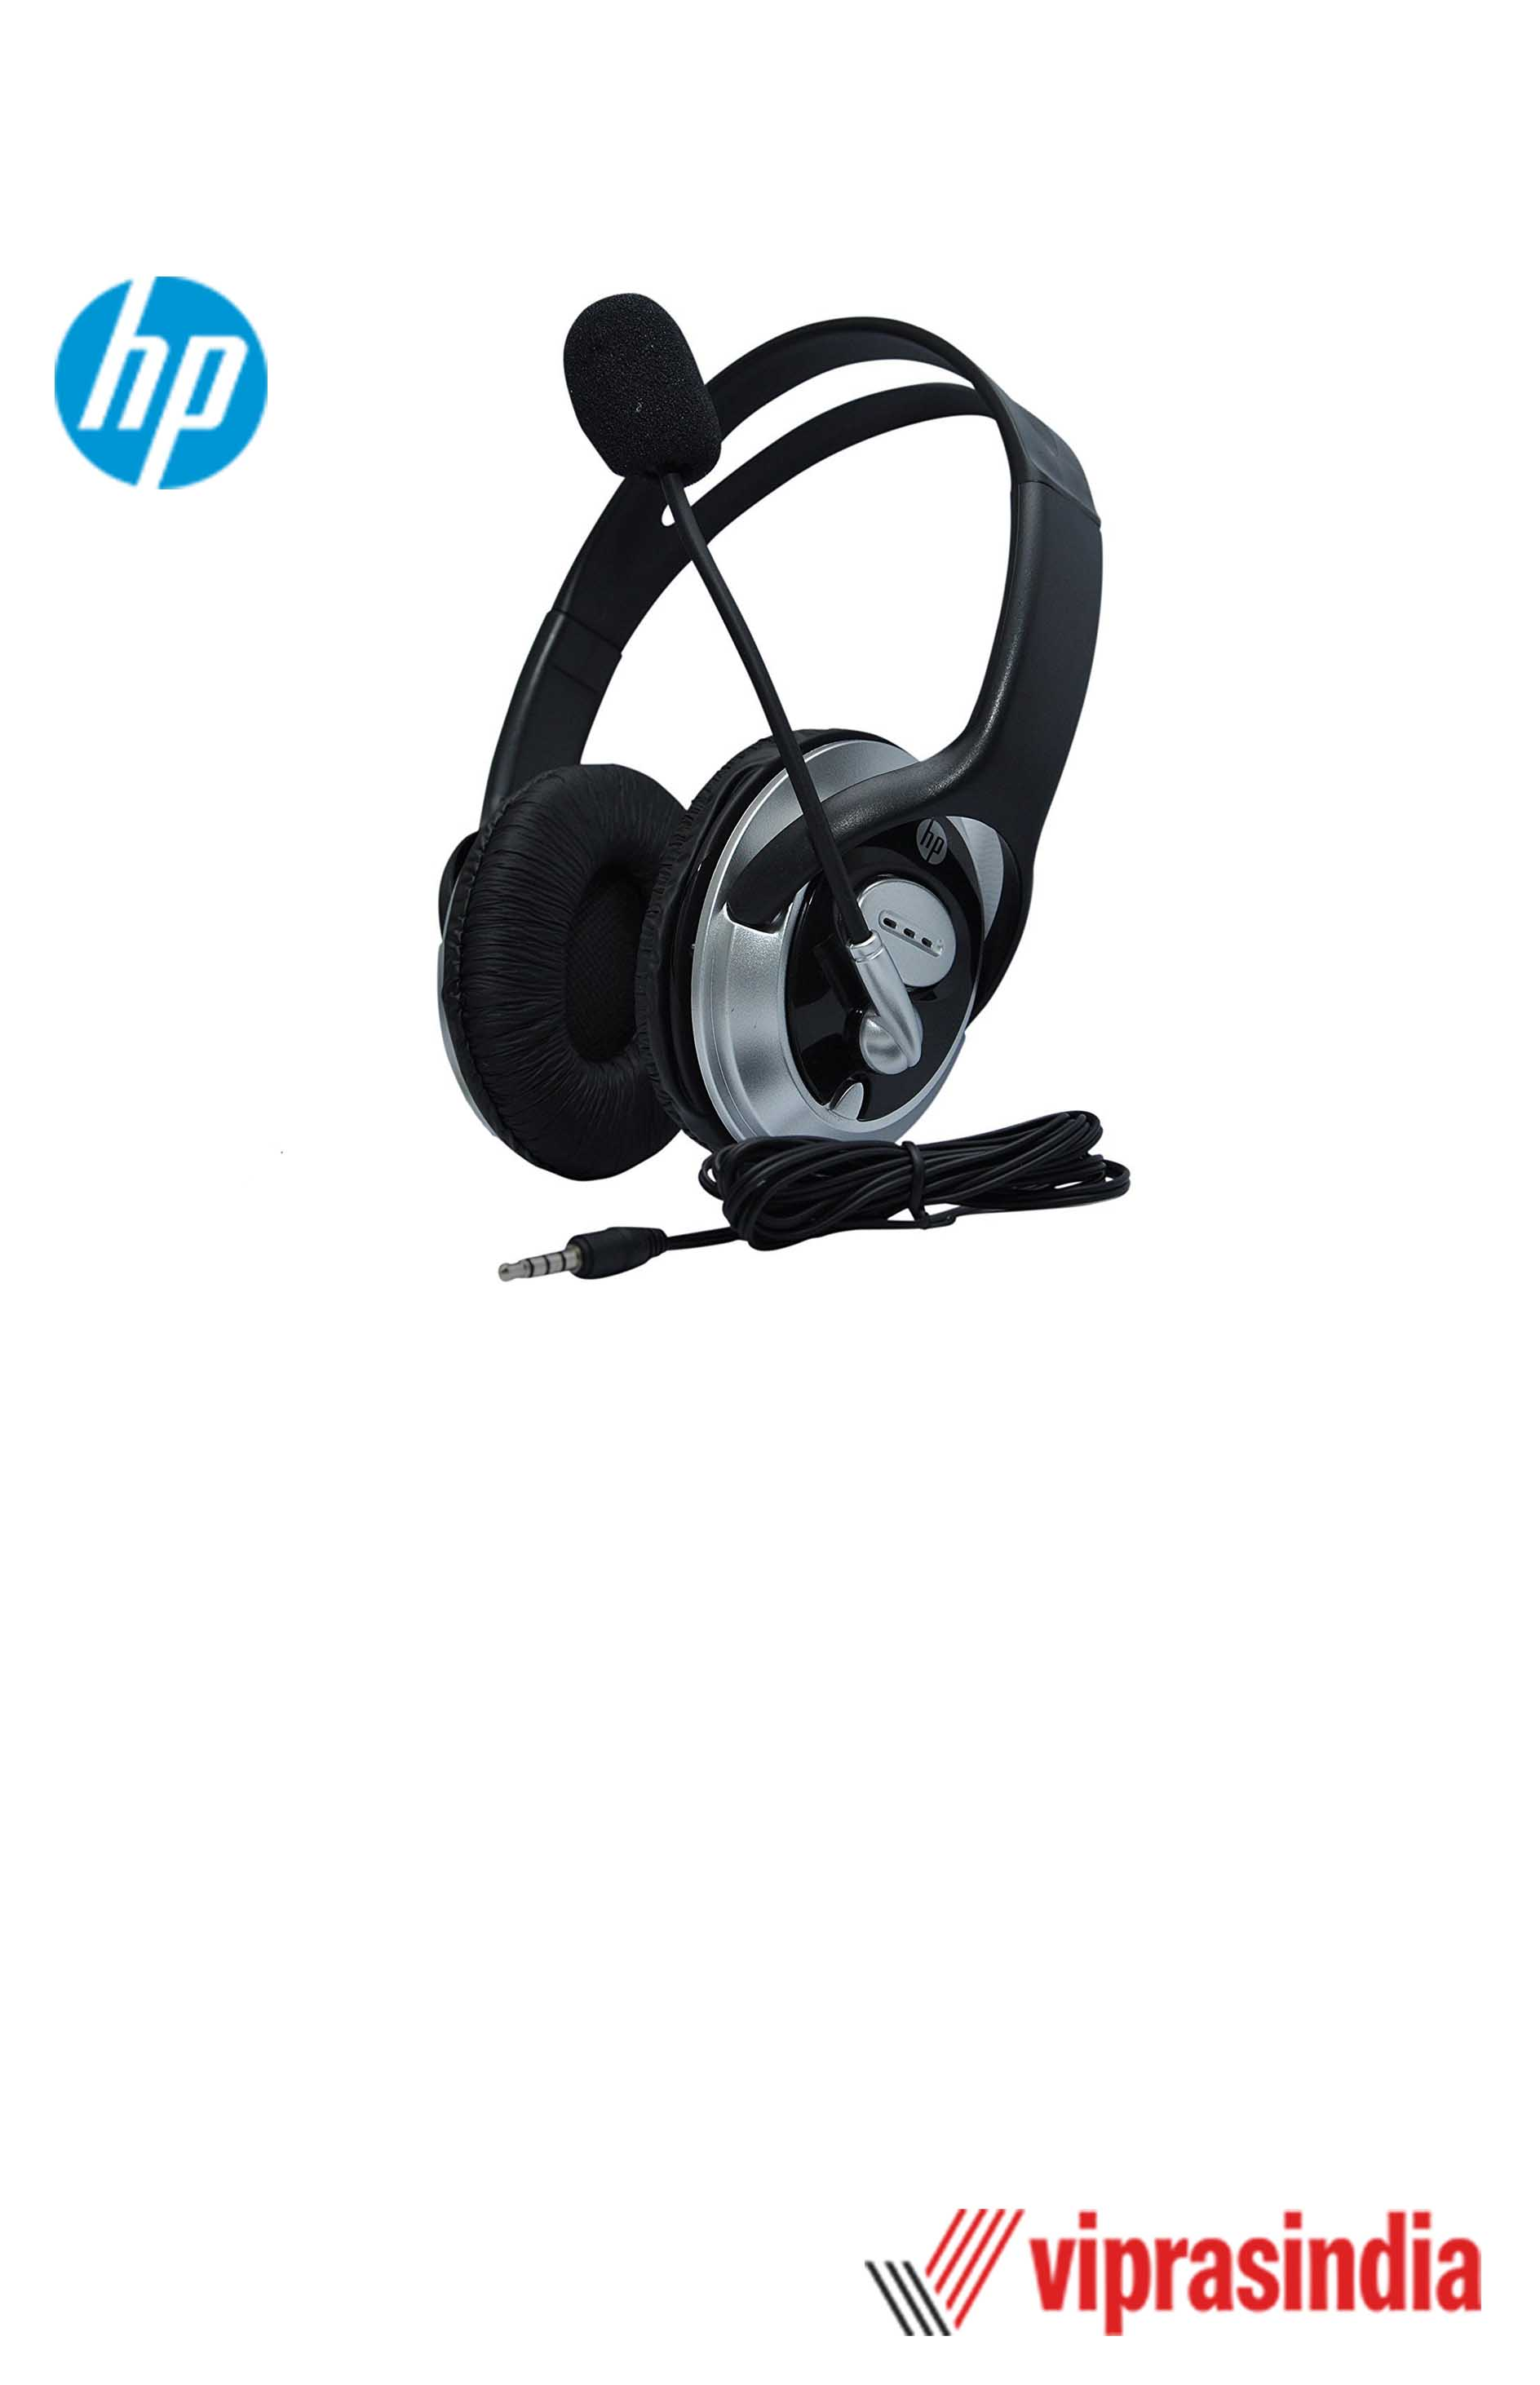 Headphone HP with Microphone B4B09PA#ACJ